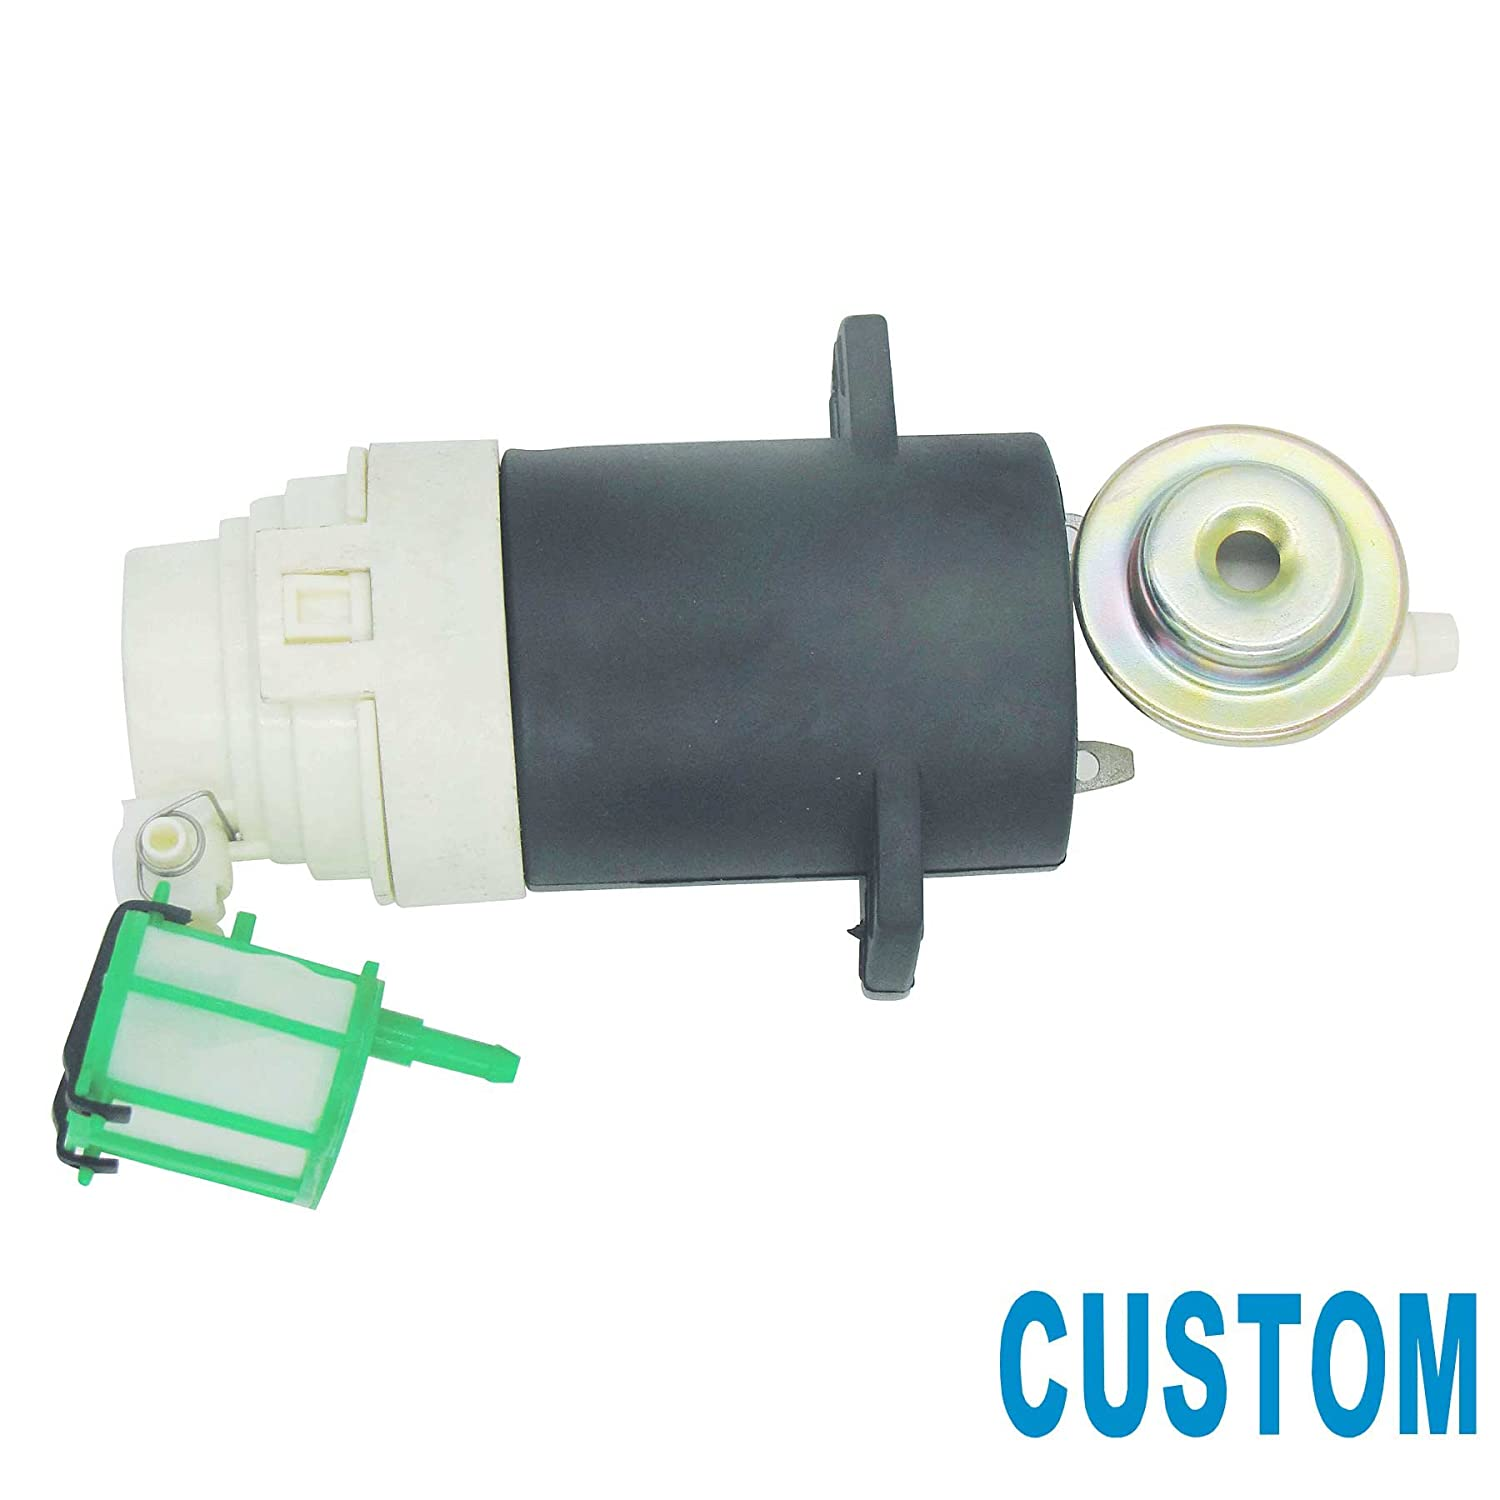 Custom 1pc New Electric Intank Fuel Pump With 1988 Nissan D21 Pickup Filter Installation Kit For 86 94 95 96 Japan Built E8376 Automotive